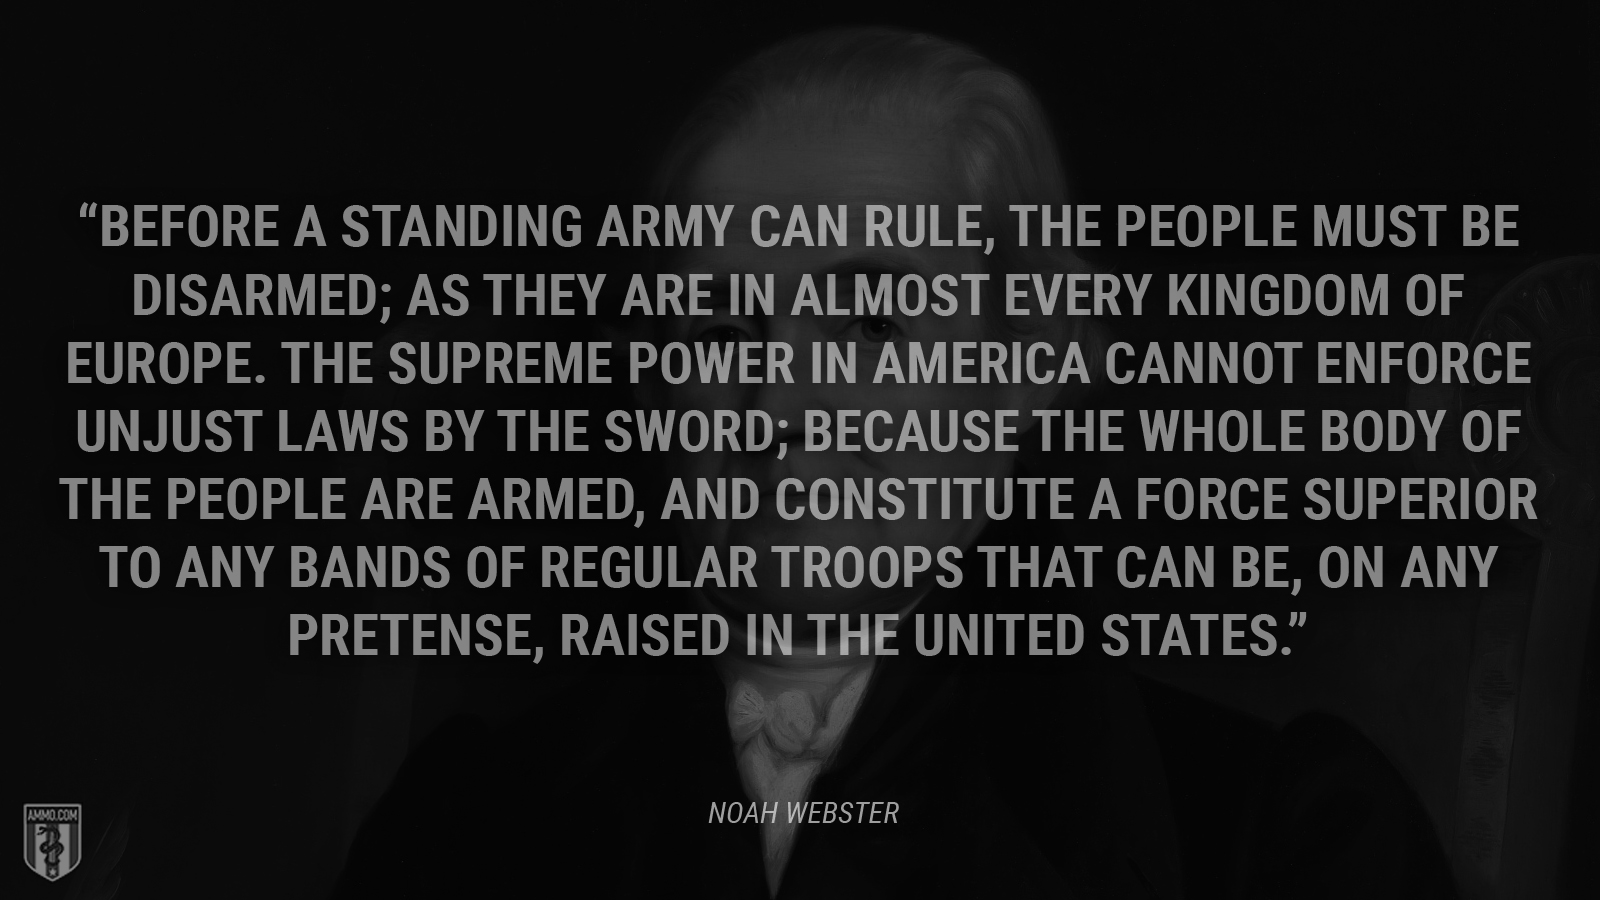 """Before a standing army can rule, the people must be disarmed; as they are in almost every kingdom of Europe. The supreme power in America cannot enforce unjust laws by the sword; because the whole body of the people are armed, and constitute a force superior to any bands of regular troops that can be, on any pretense, raised in the United States."" - Noah Webster"